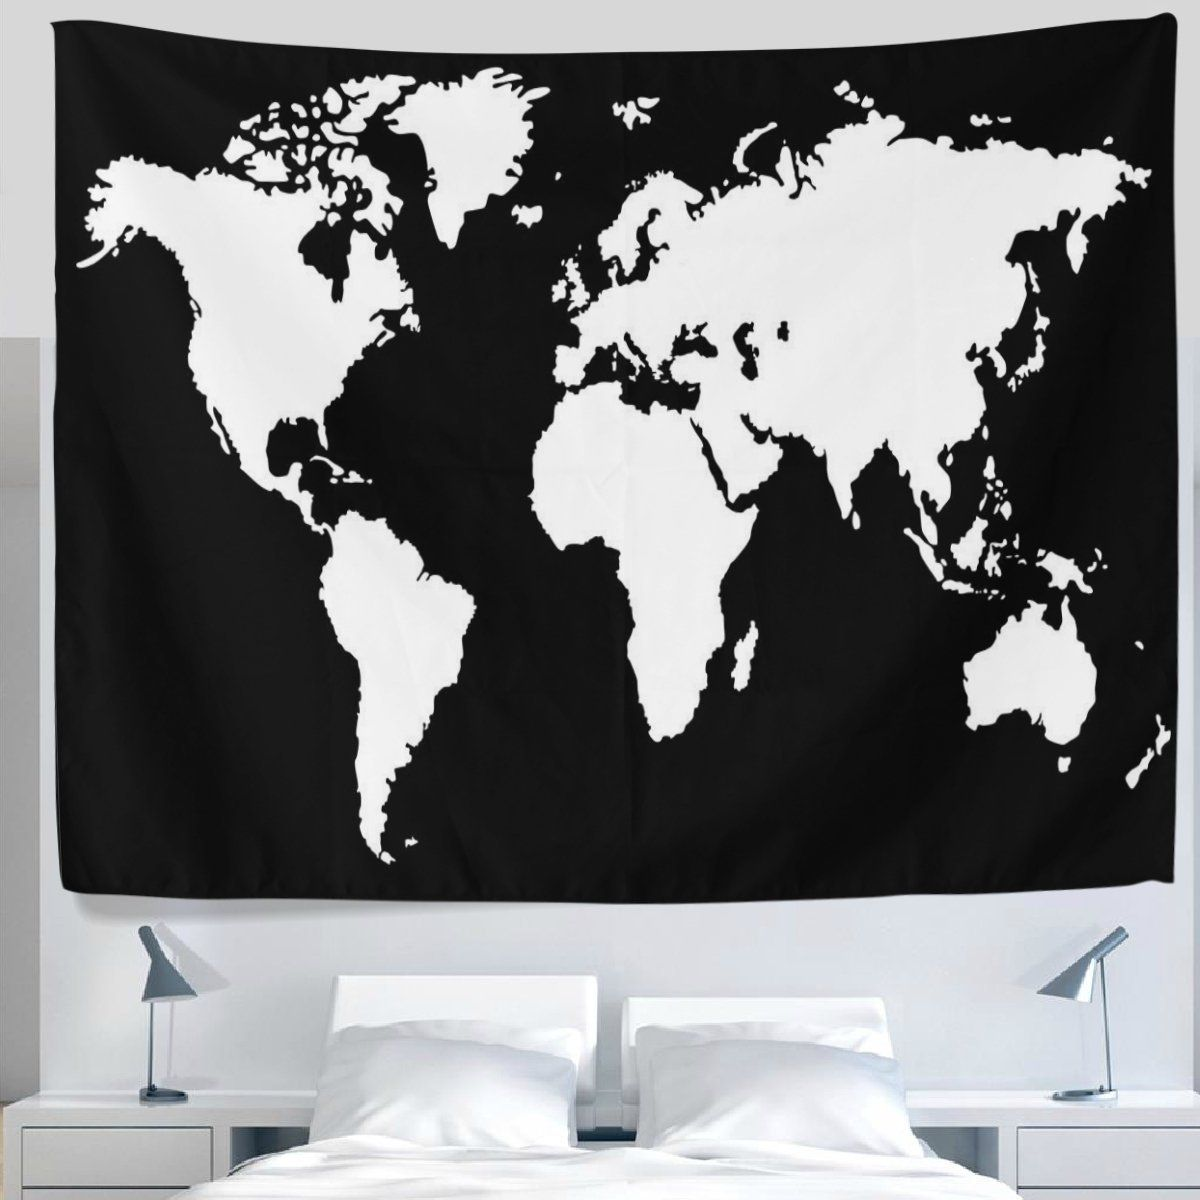 Alaza creative black and white world map tapestry wall hanging alaza creative black and white world map tapestry wall hanging artistic light weight polyester fabric gumiabroncs Gallery